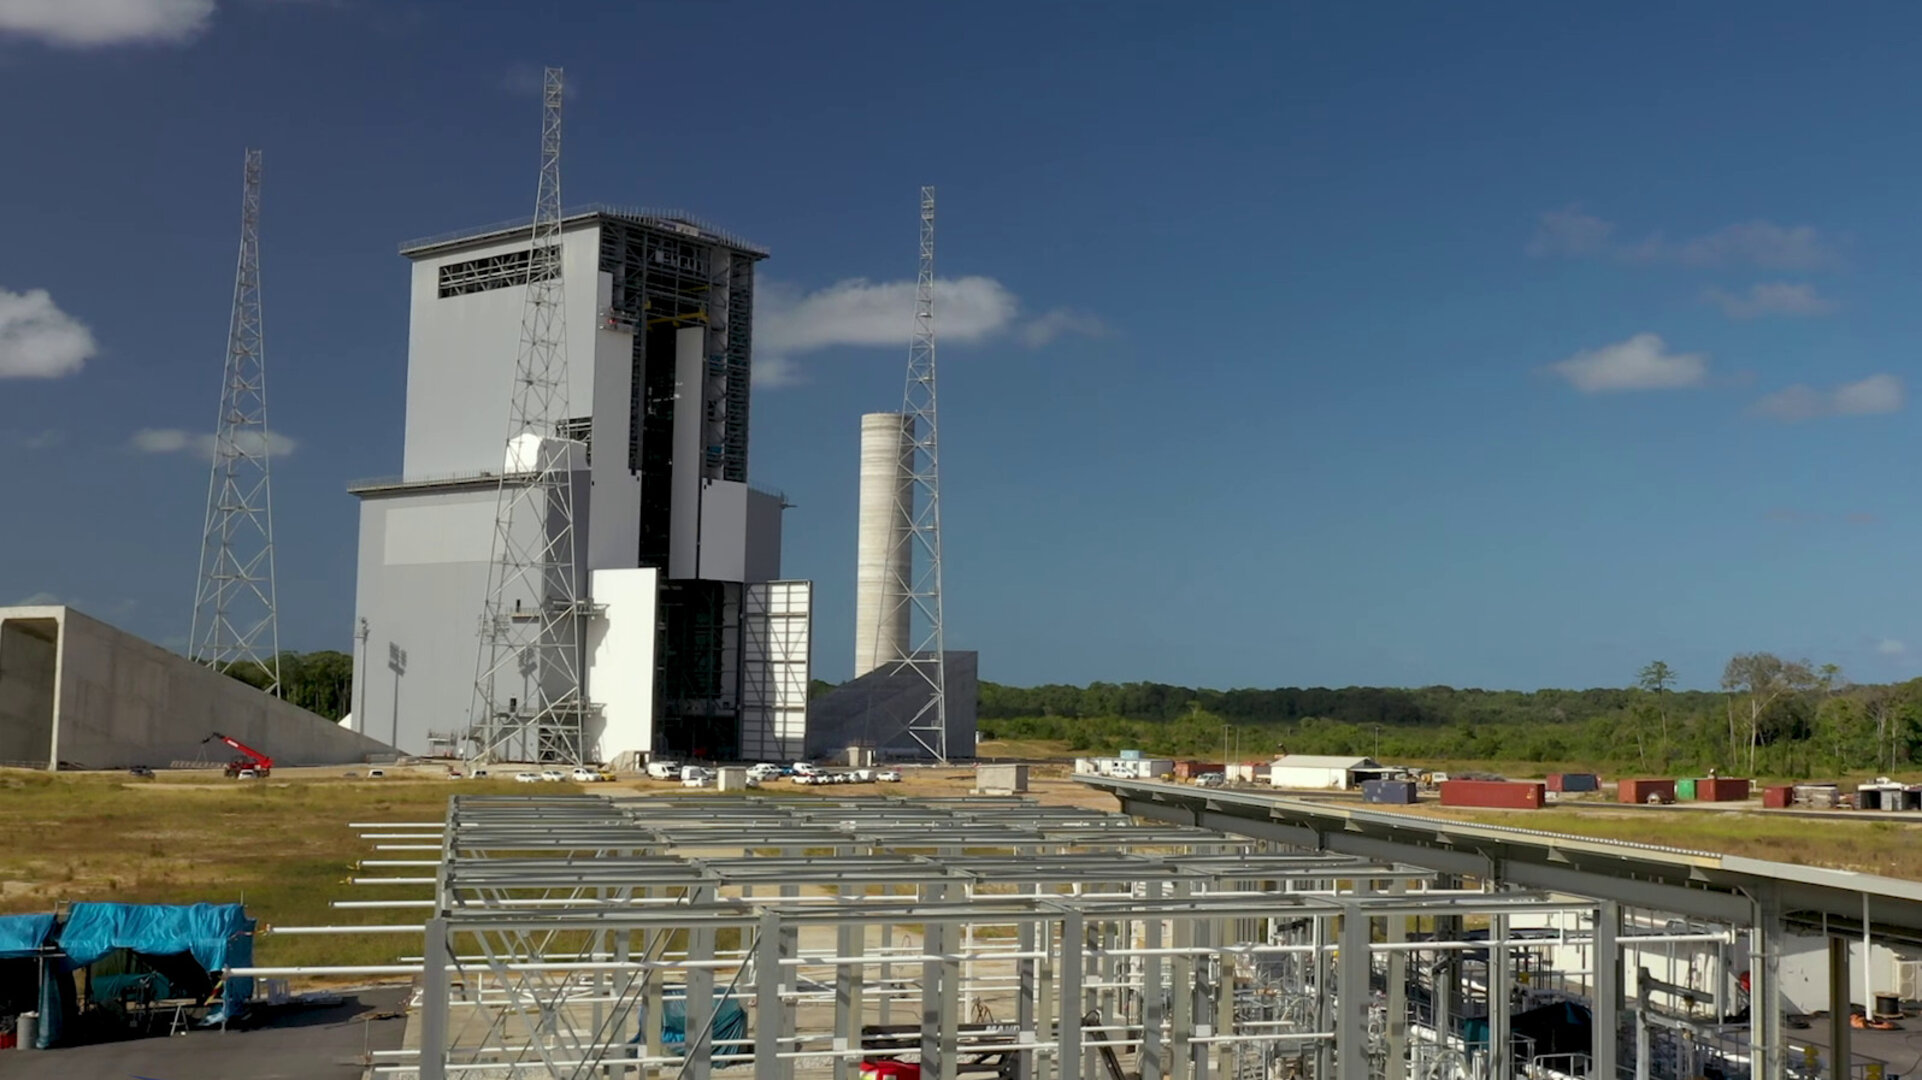 Take a tour the Ariane 6 launch facilities filmed on 1 March 2020 at Europe's Spaceport.